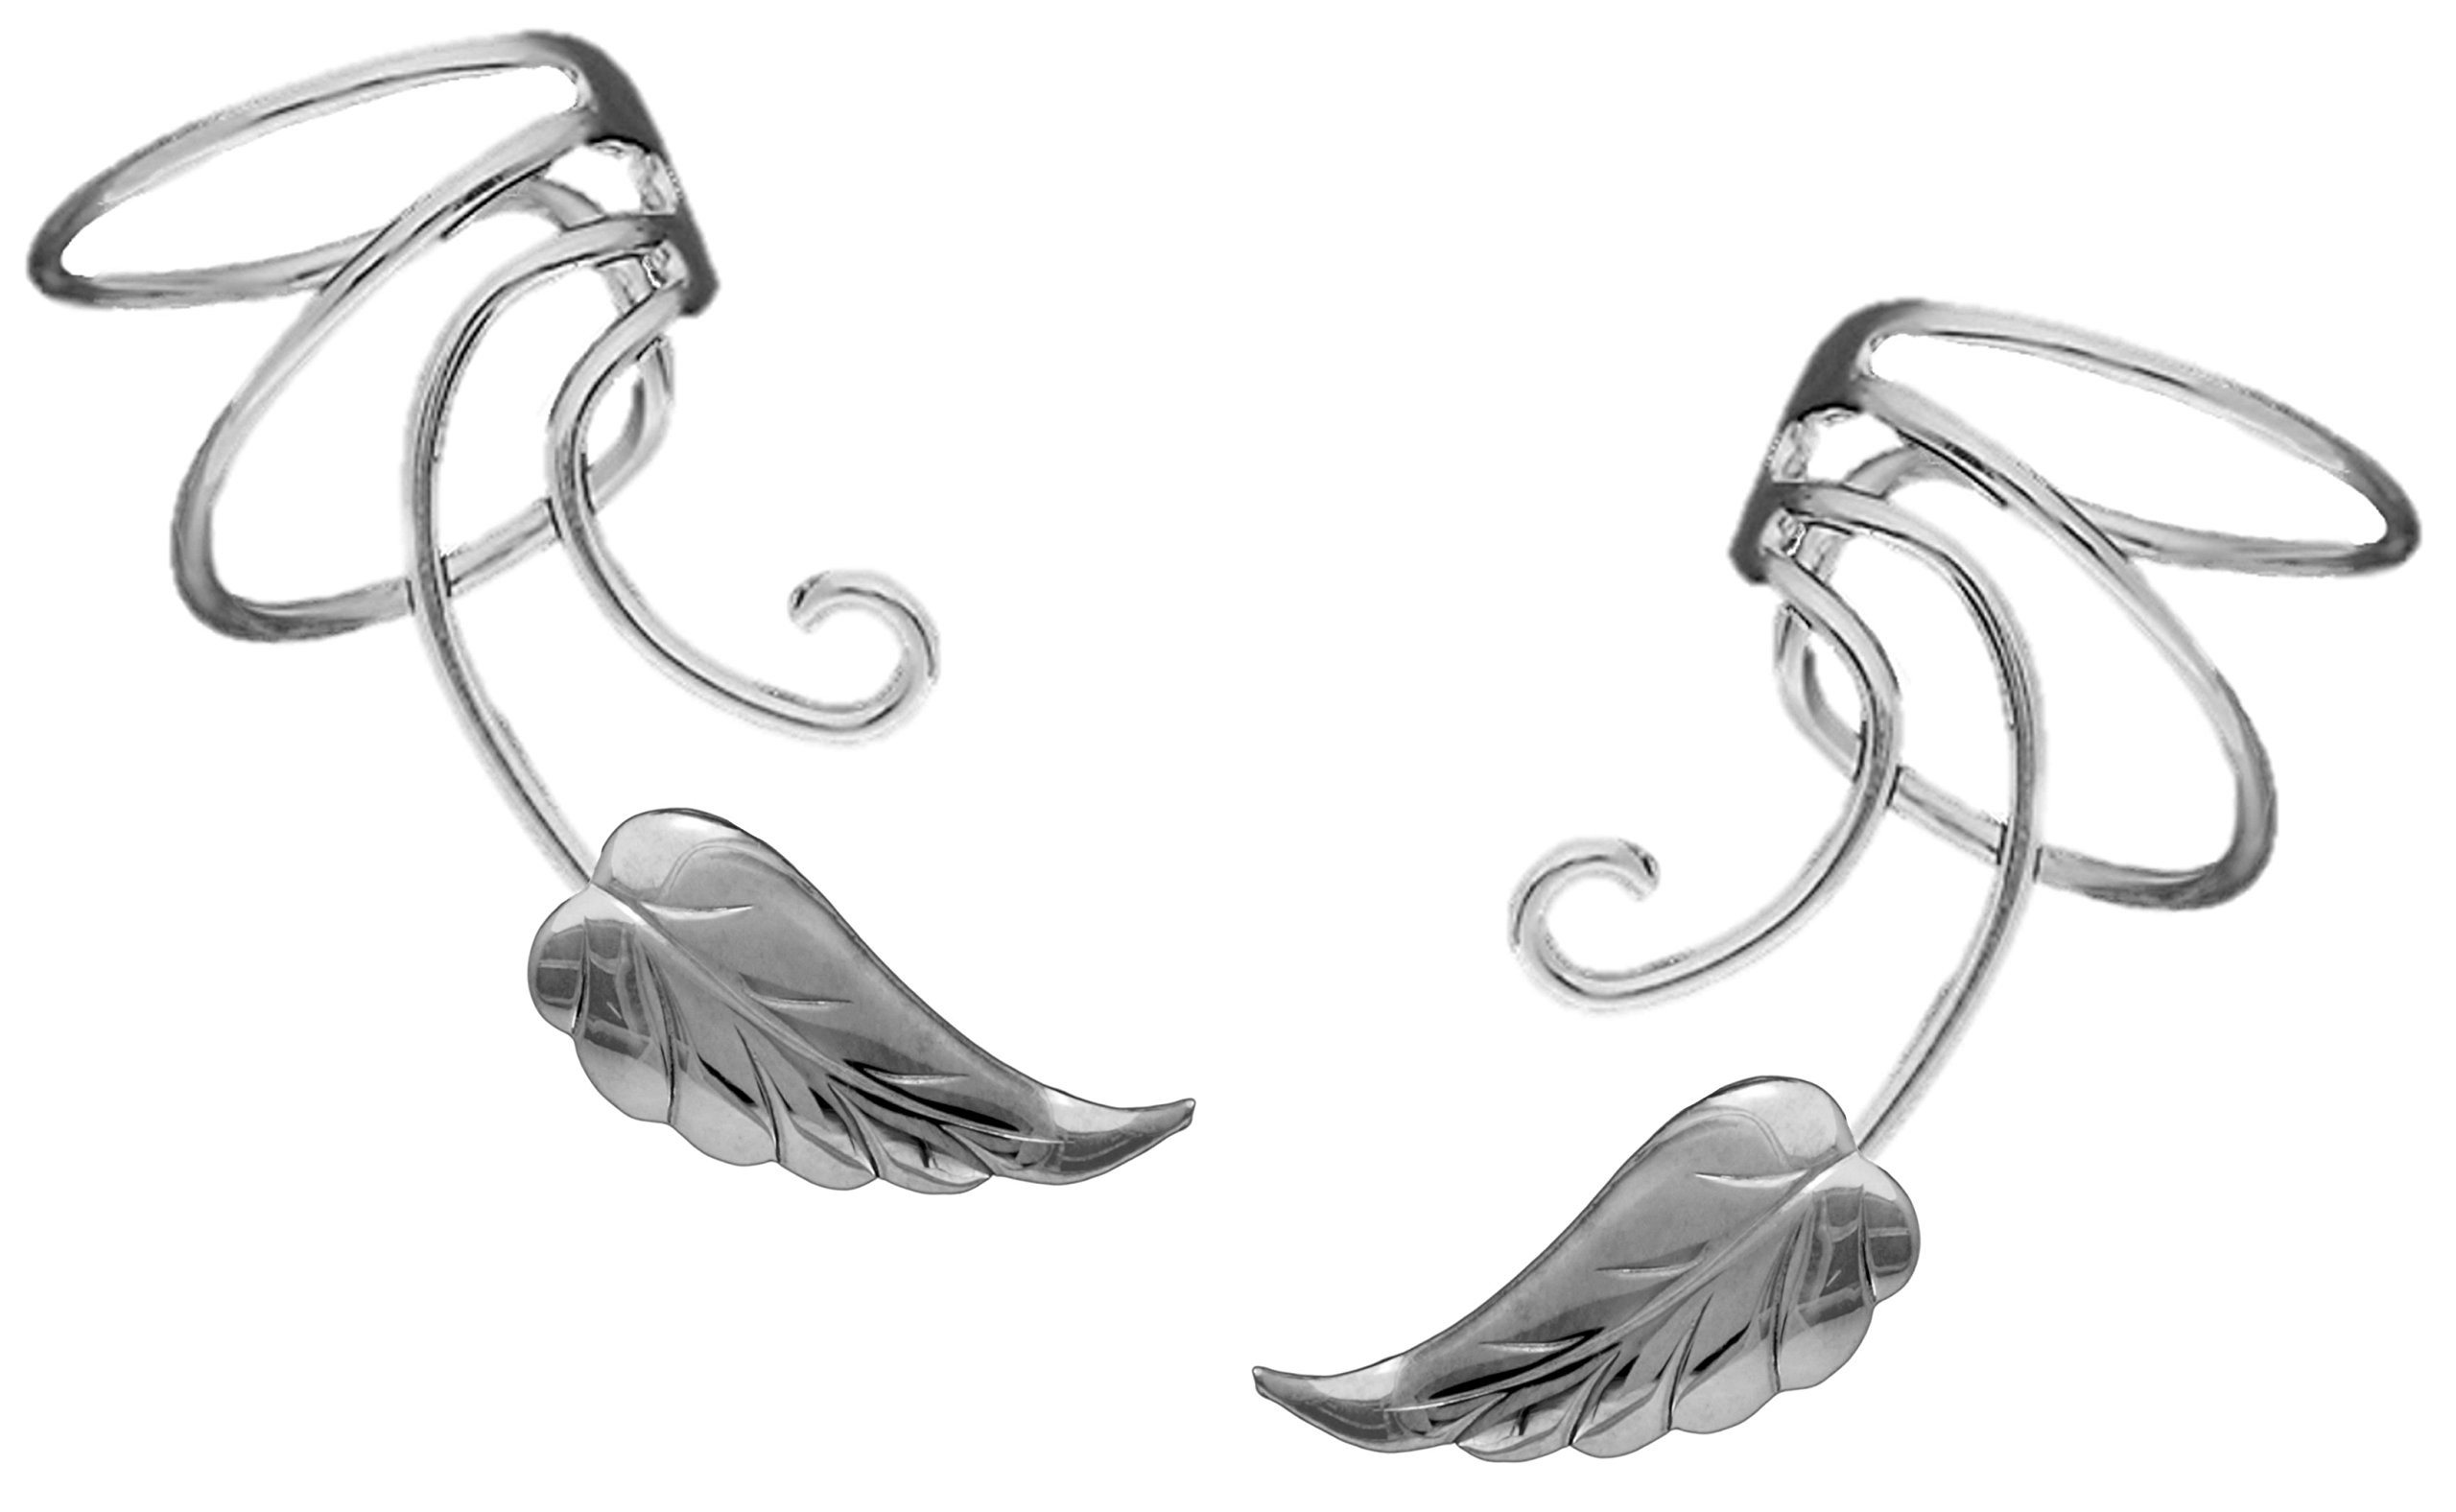 Ear Charms Feather Leaf Wave Ear Cuff Non-pierced Cartilage Wrap Earring Clips Pair in Rhodium on Silver by Ear Charms inc